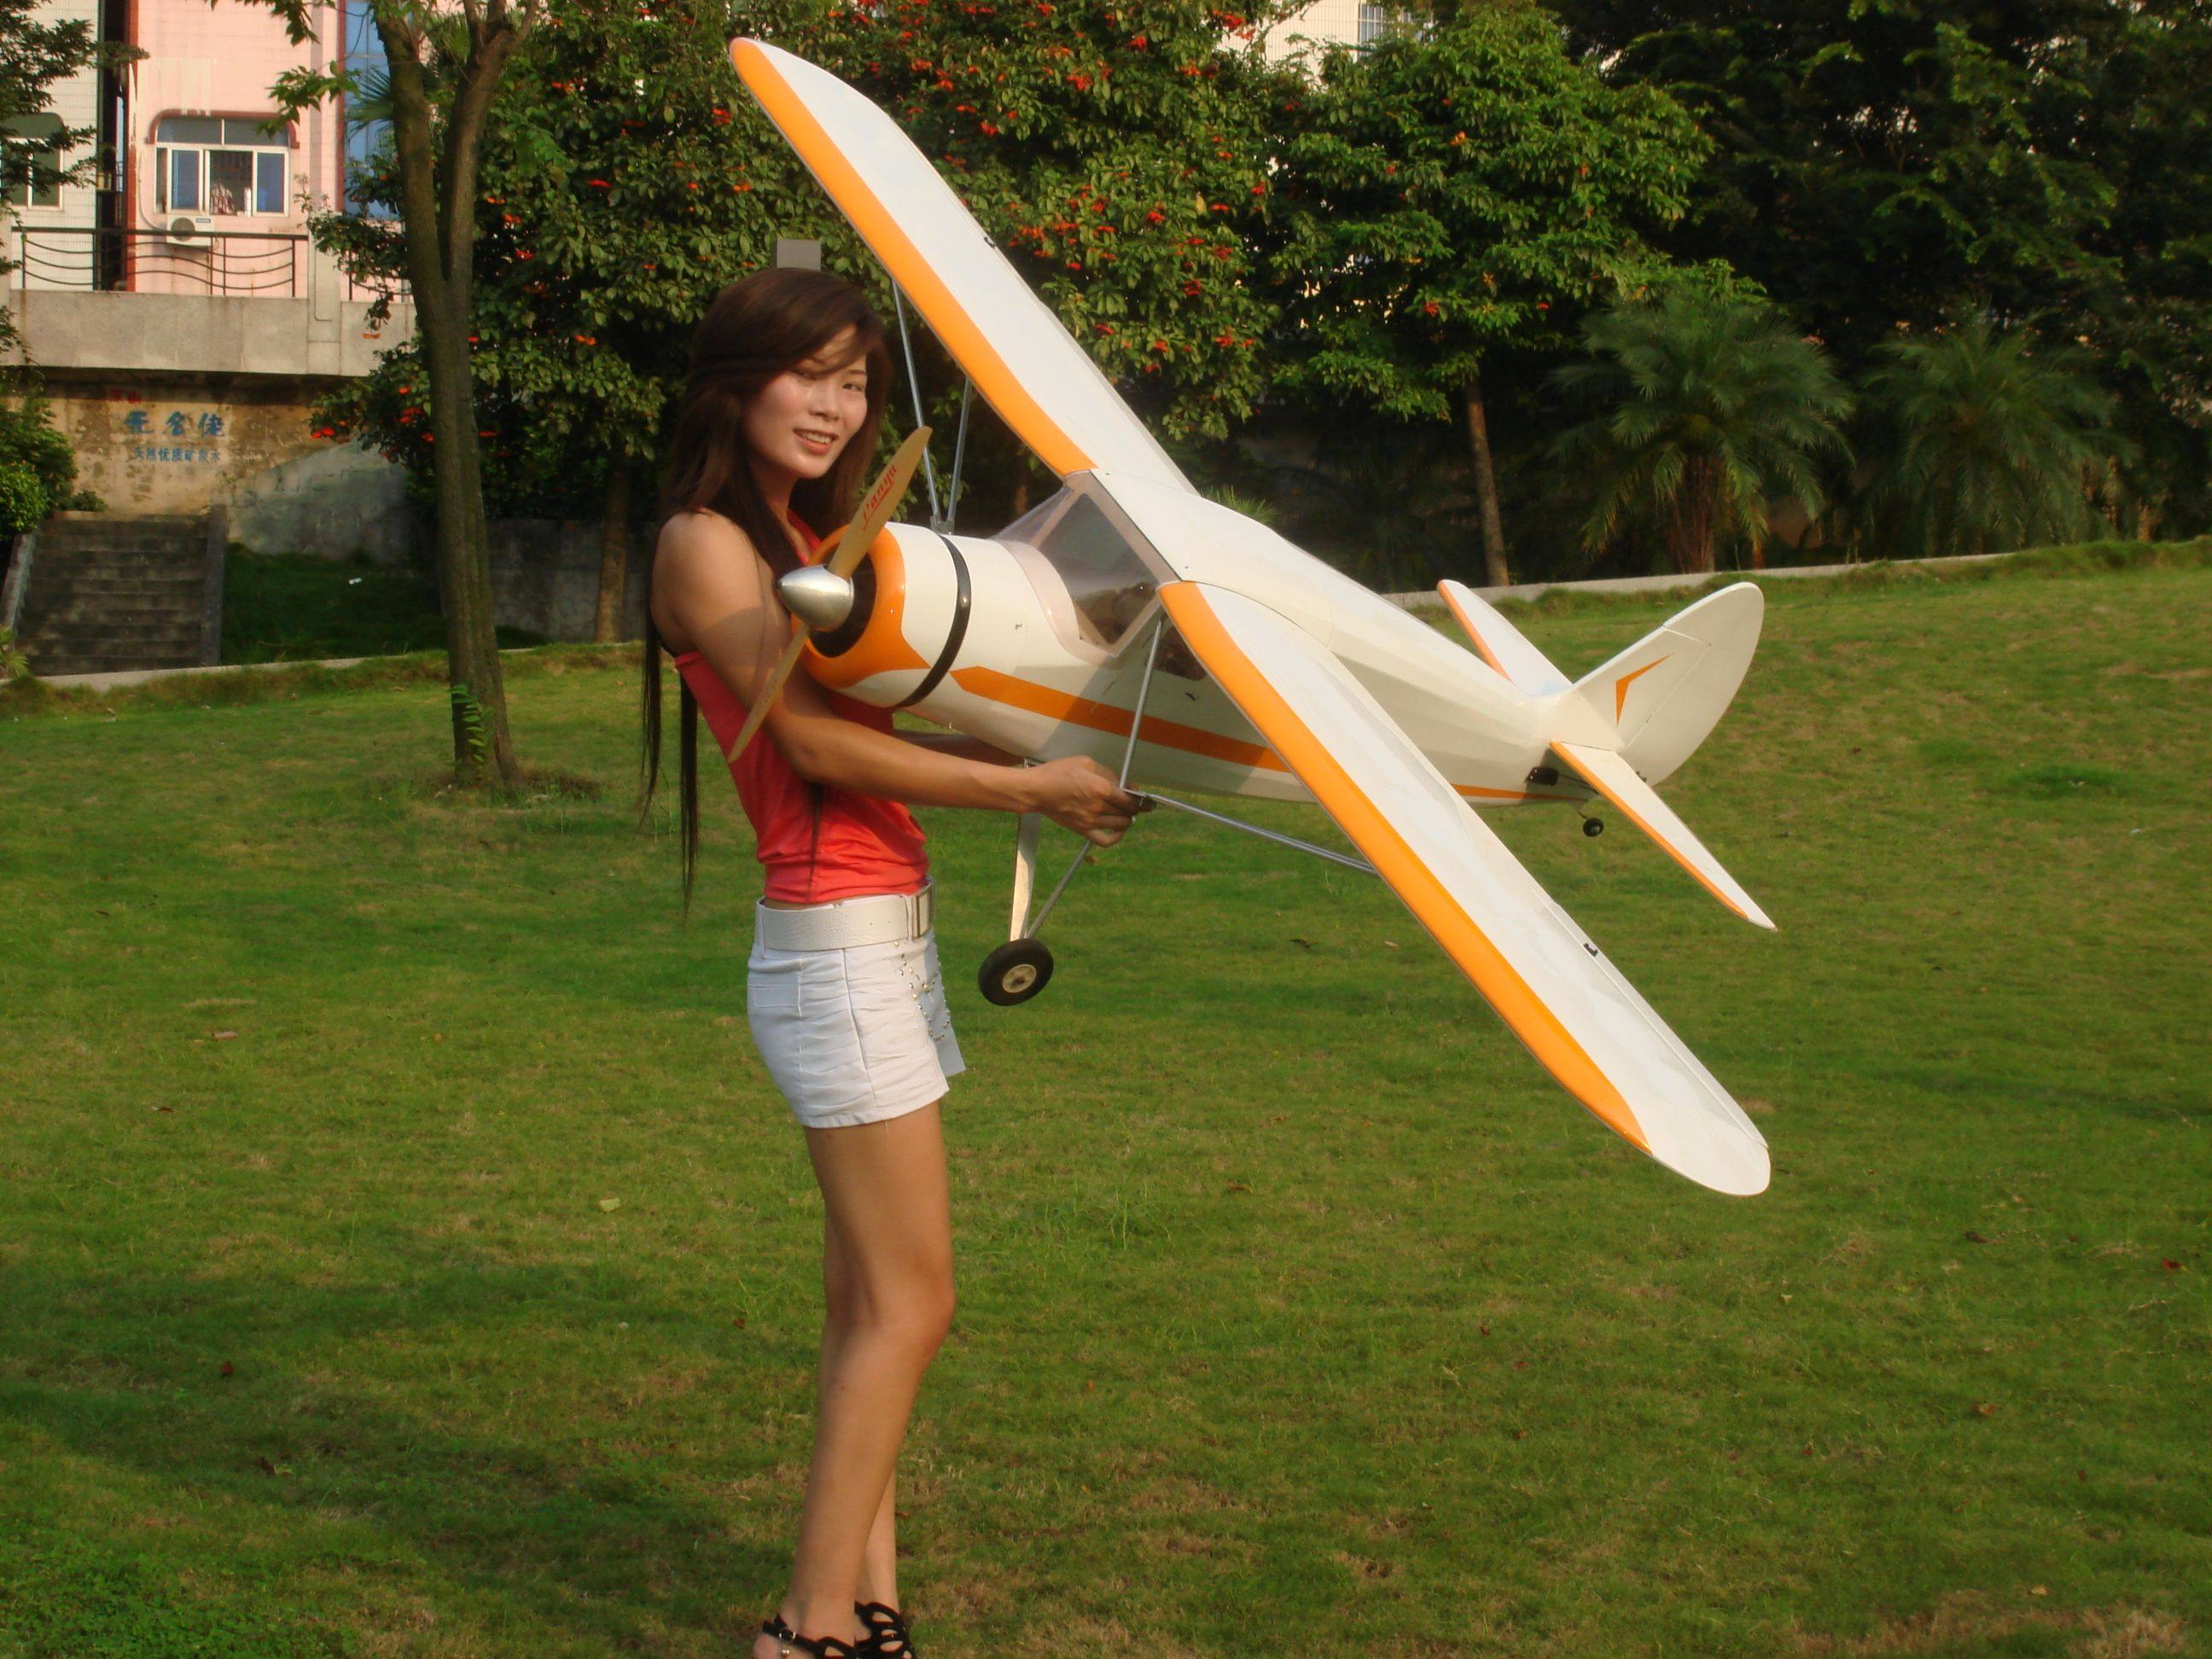 rc jet rtf with Farcai26onor on F 15 Desert 70mm 5ch Edf Rc Jet Plane With Retracts Rtf likewise Quanum Fy Mini 3d Pros Gimbal also P Rm6619 together with Rc Model Airplanes besides Hsp 62013 Body Post 4p For Hsp 18 Scale Nitro Monster Truck A5f.